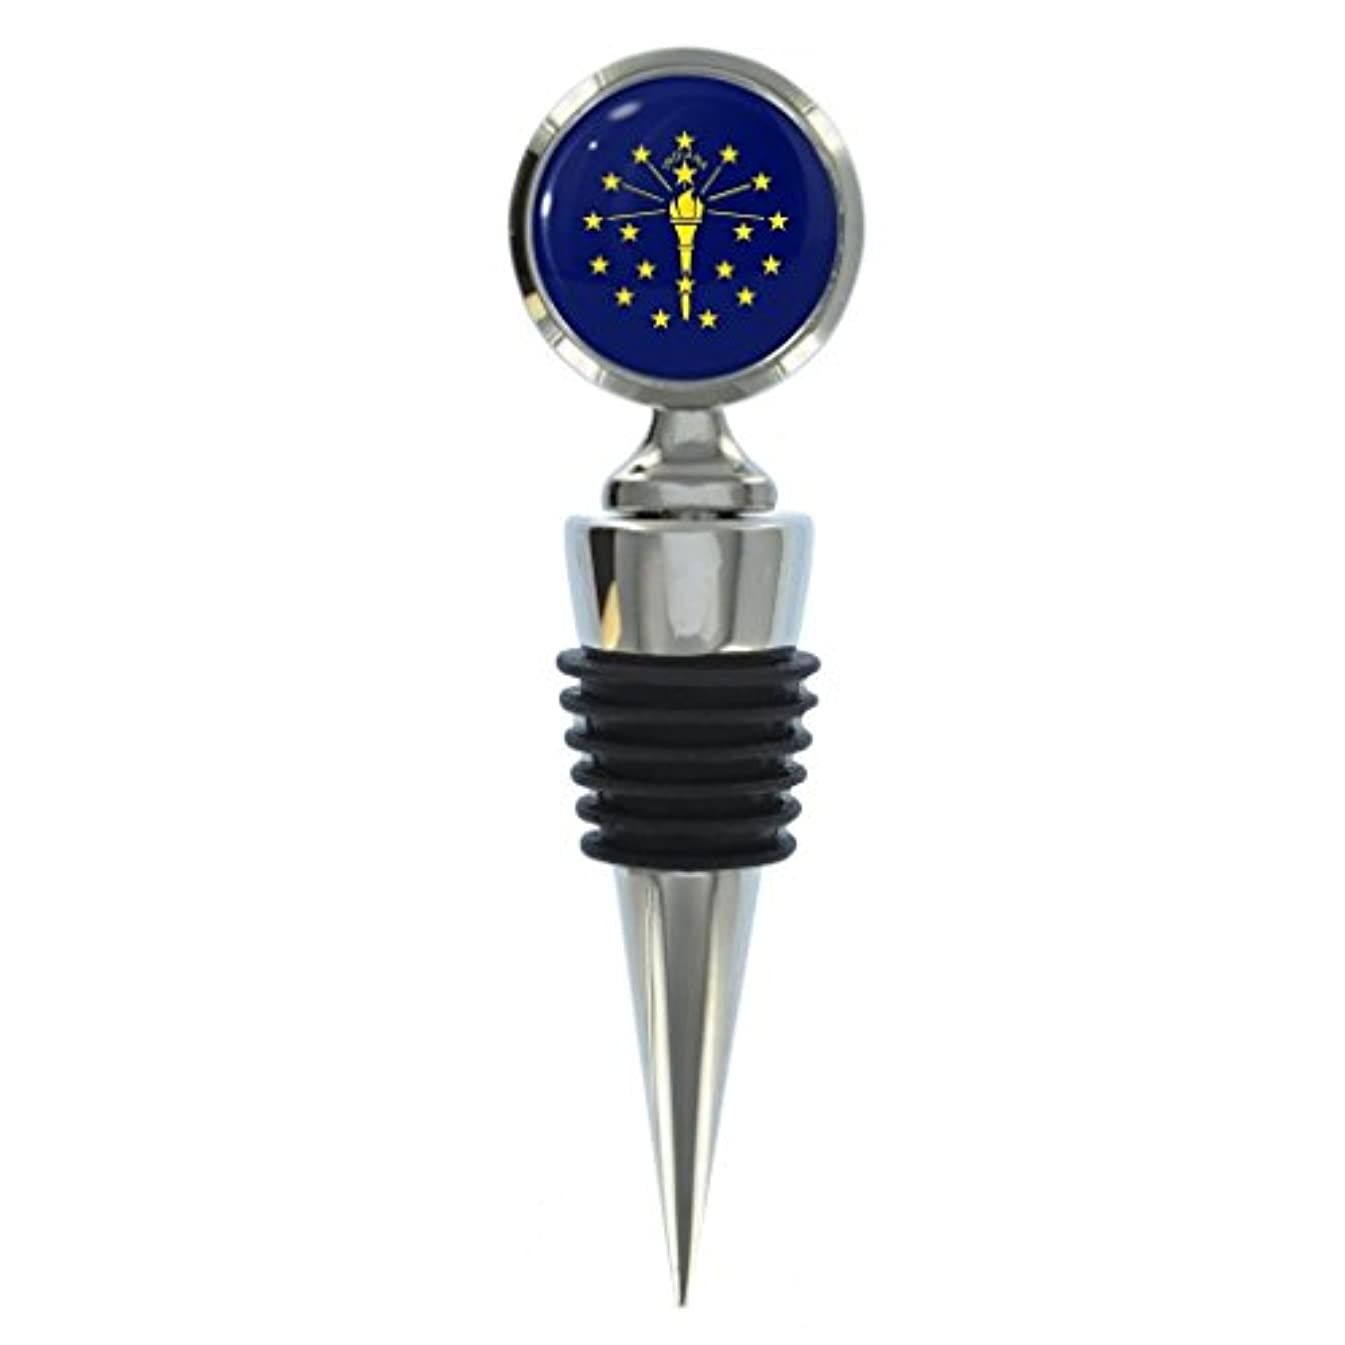 Indiana US State Flag Metal Wine Bottle Stopper